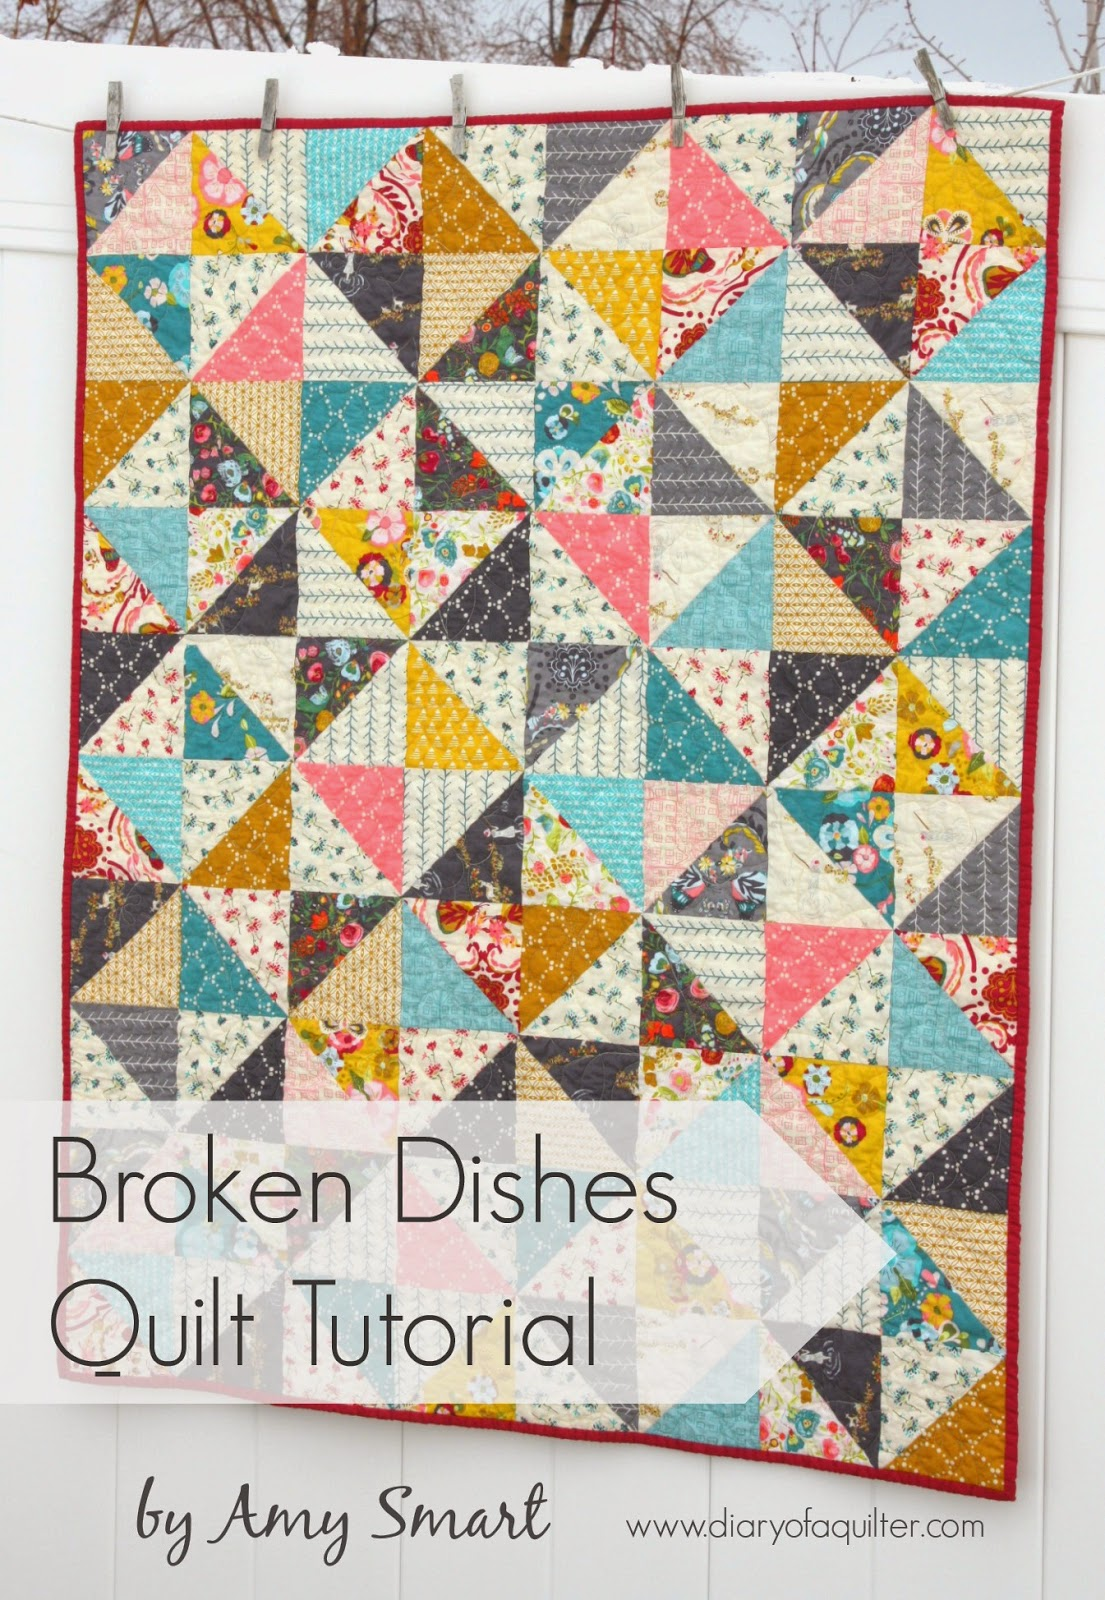 Baby Quilts.com Half Square Triangle Baby Quilt Pattern